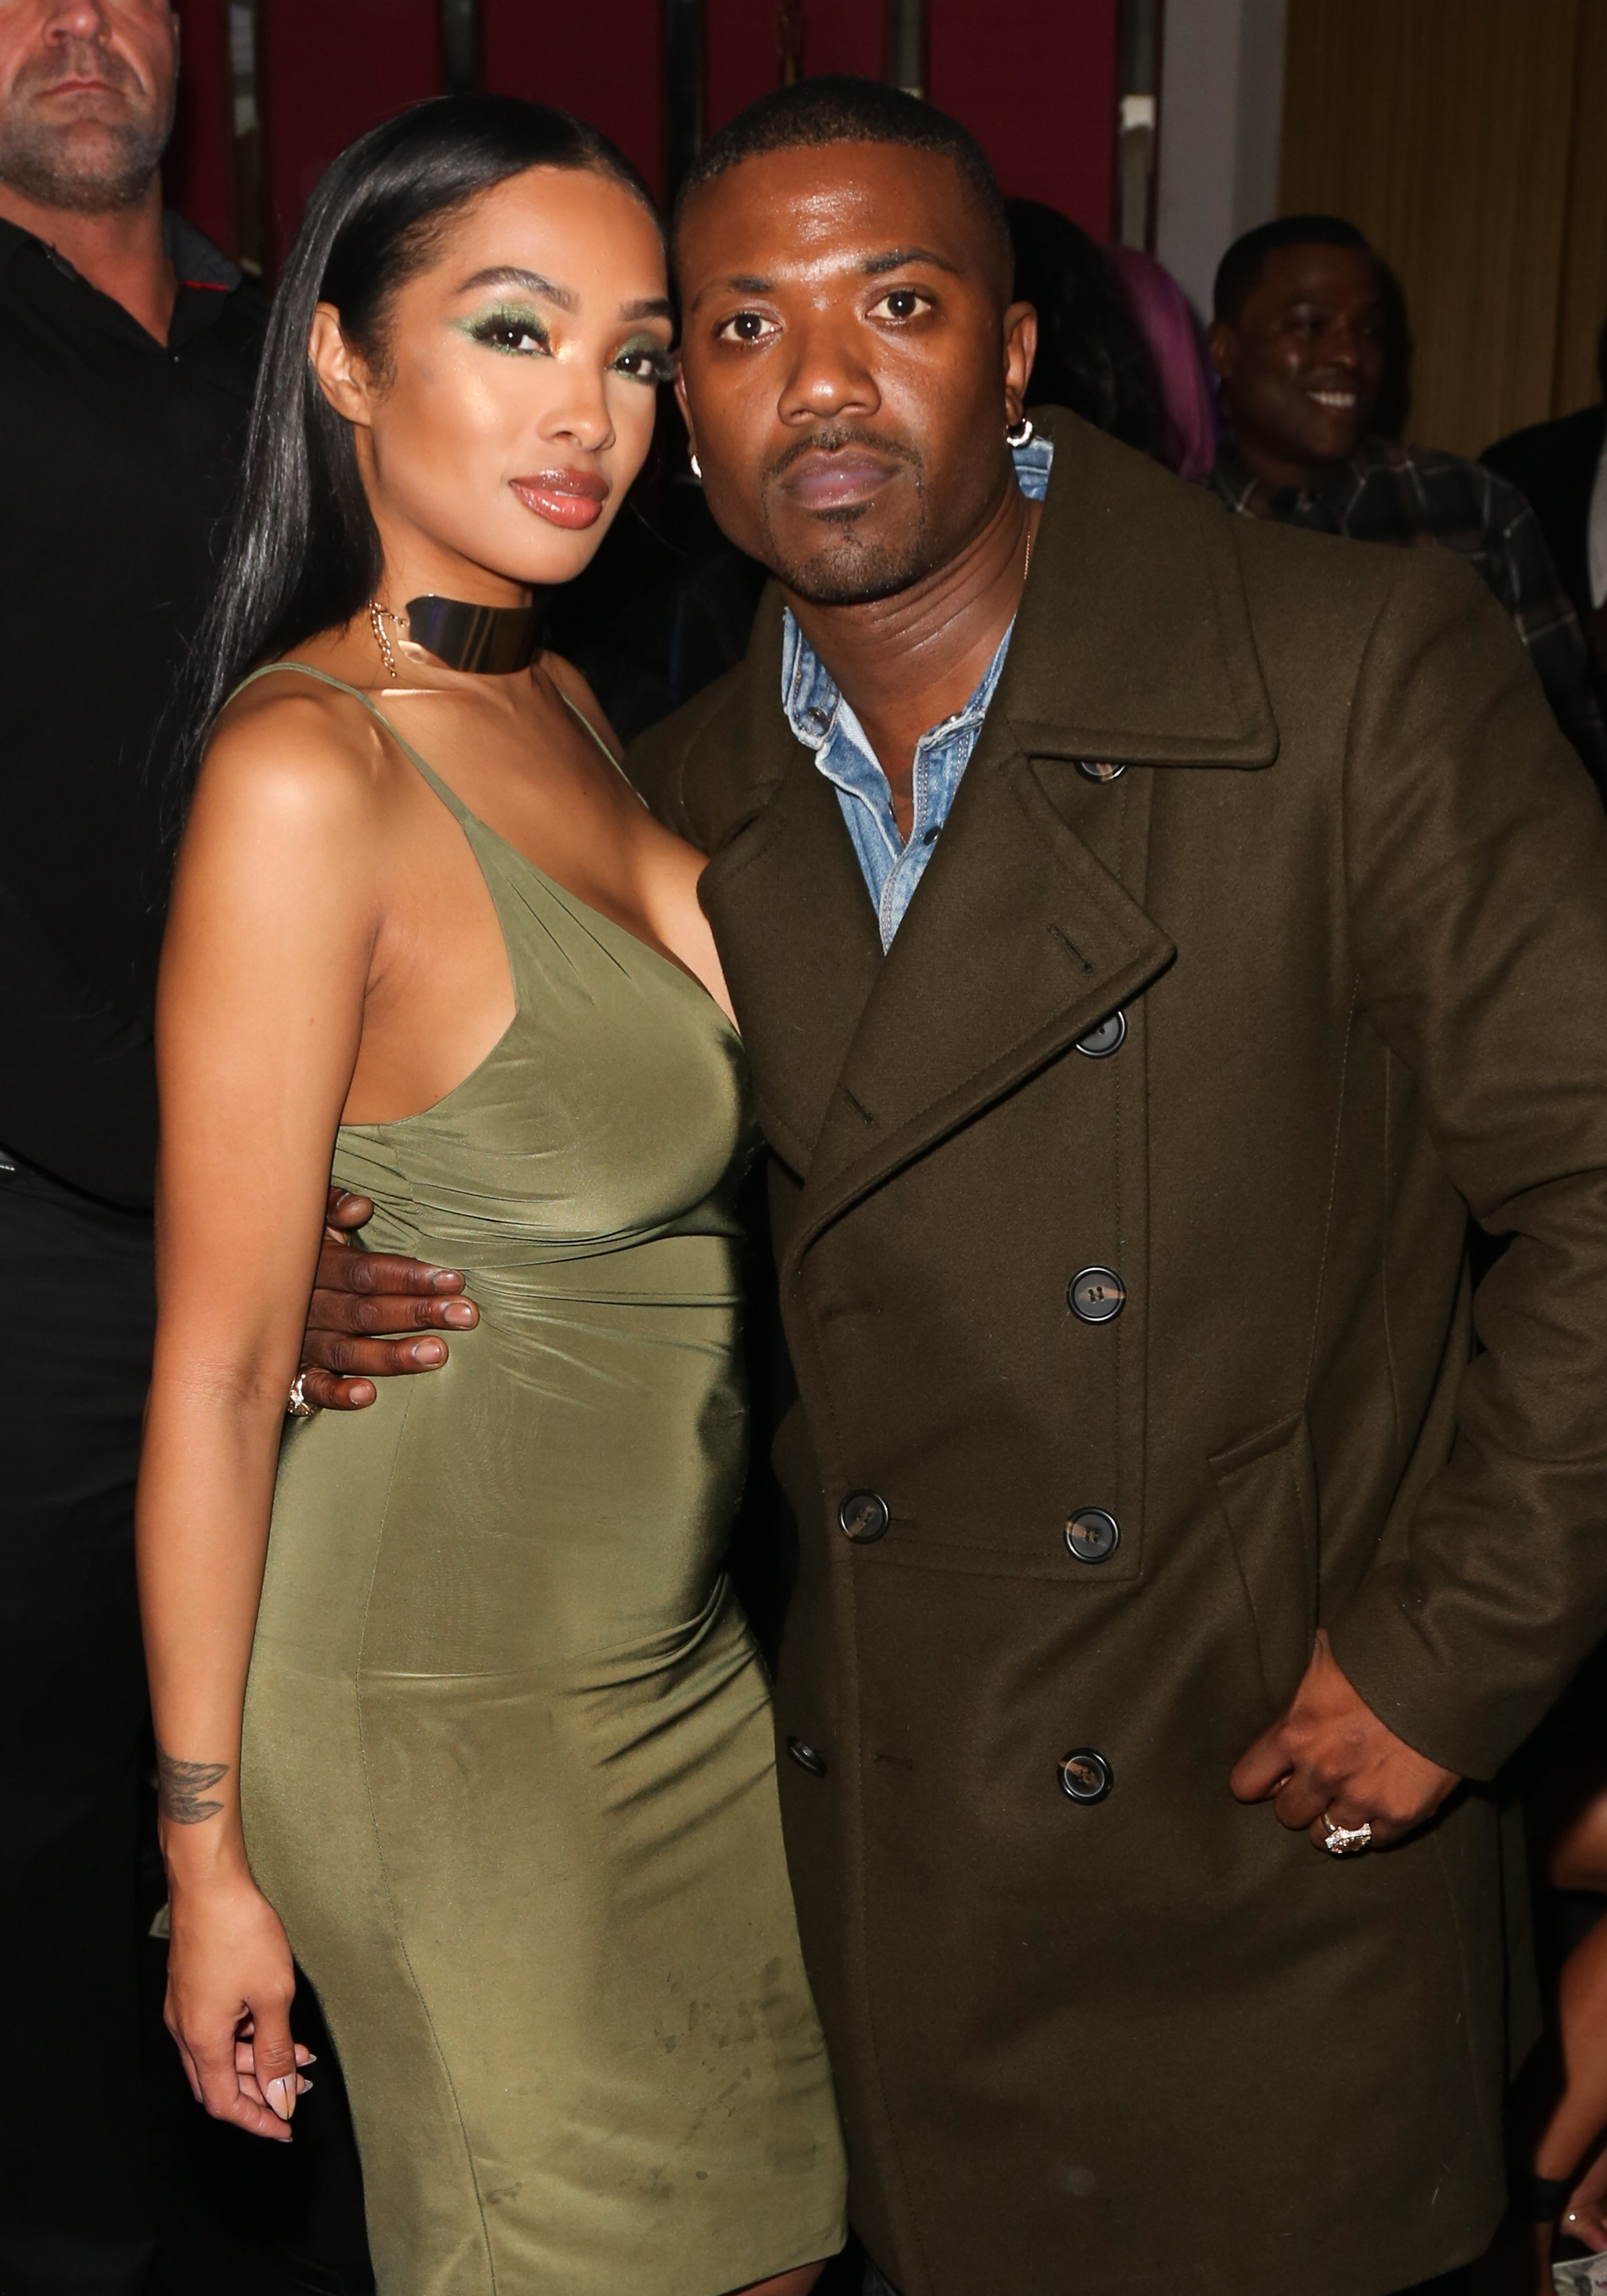 Ray J and Princess Love at Tyga's birthday celebration in November 2018. | Photo: Getty Images